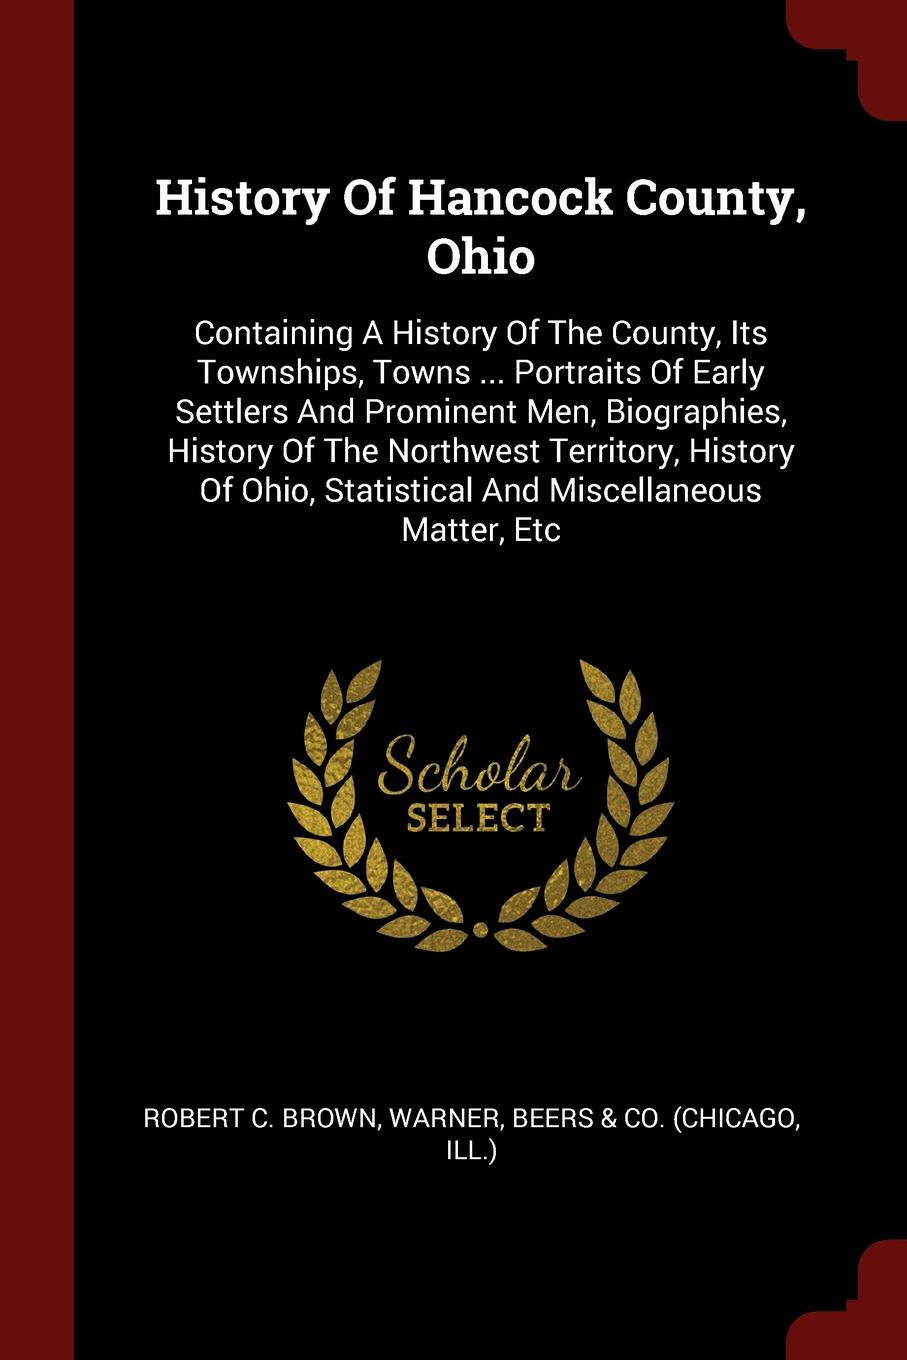 Robert C. Brown, Warner History Of Hancock County, Ohio. Containing A History Of The County, Its Townships, Towns ... Portraits Of Early Settlers And Prominent Men, Biographies, History Of The Northwest Territory, History Of Ohio, Statistical And Miscellaneous Matter, Etc